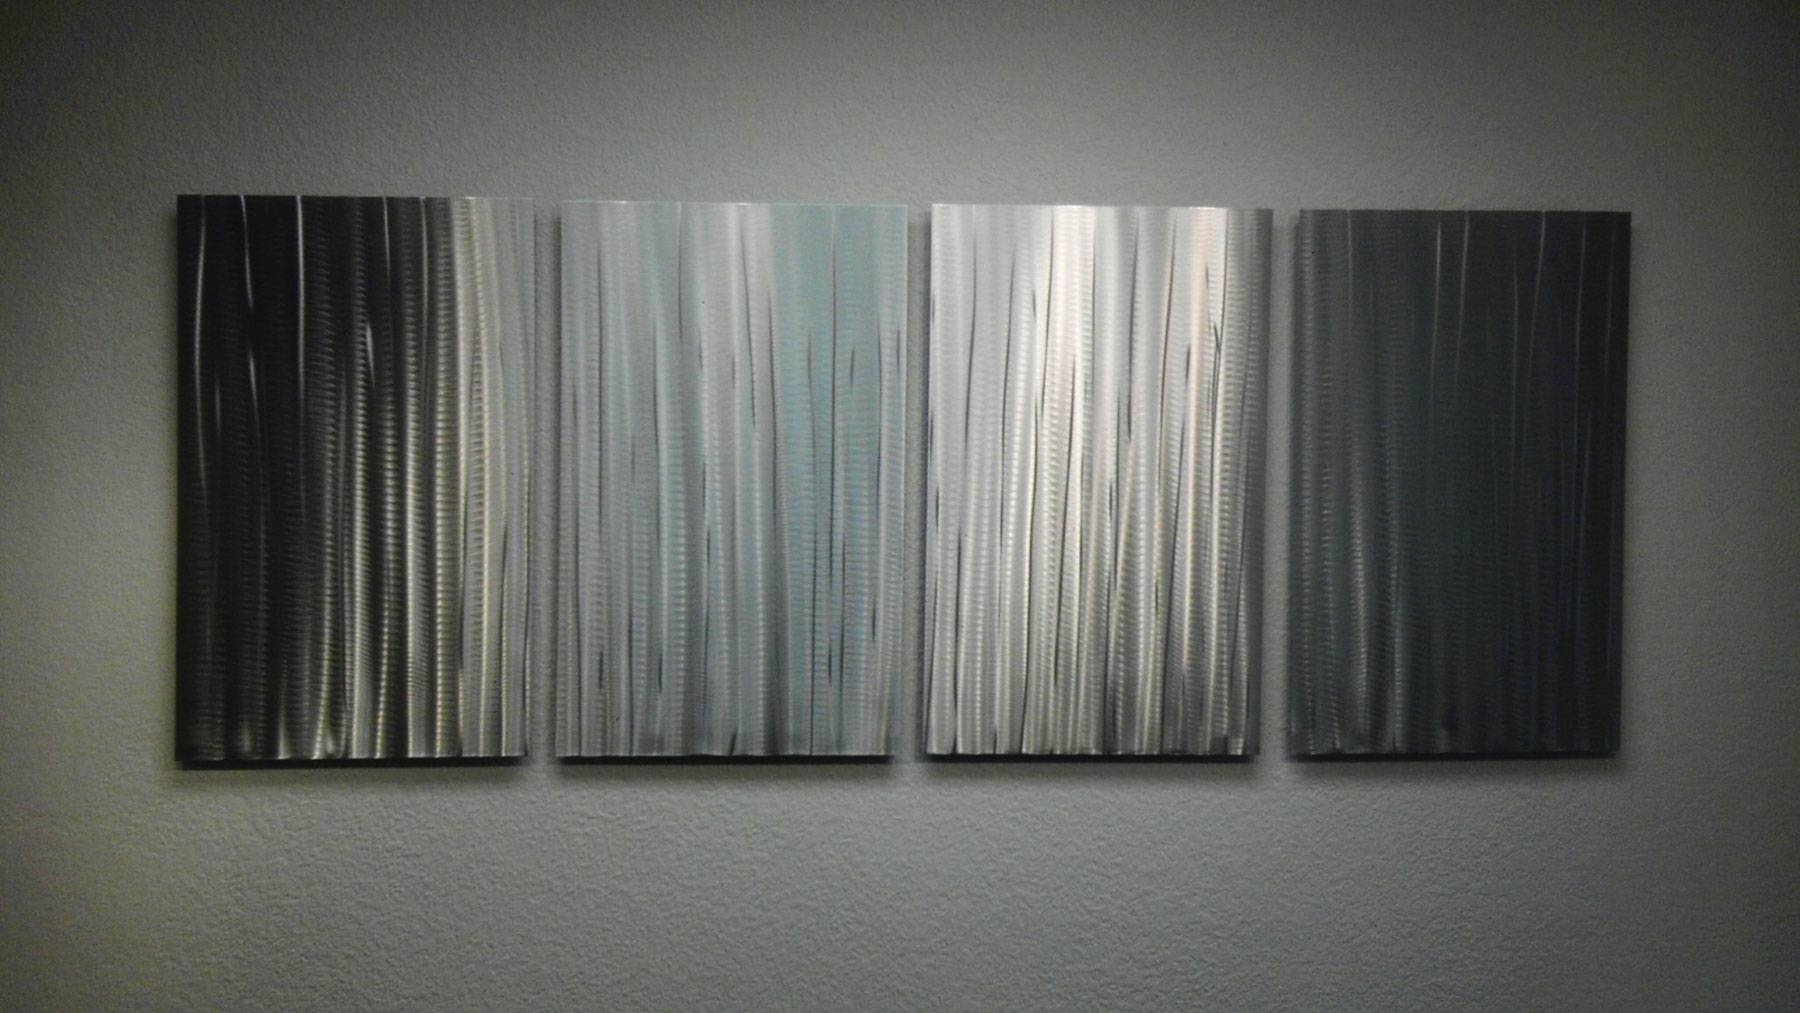 Bamboo Forest – Abstract Metal Wall Art Contemporary Modern Decor With Regard To Newest Bamboo Metal Wall Art (View 10 of 25)